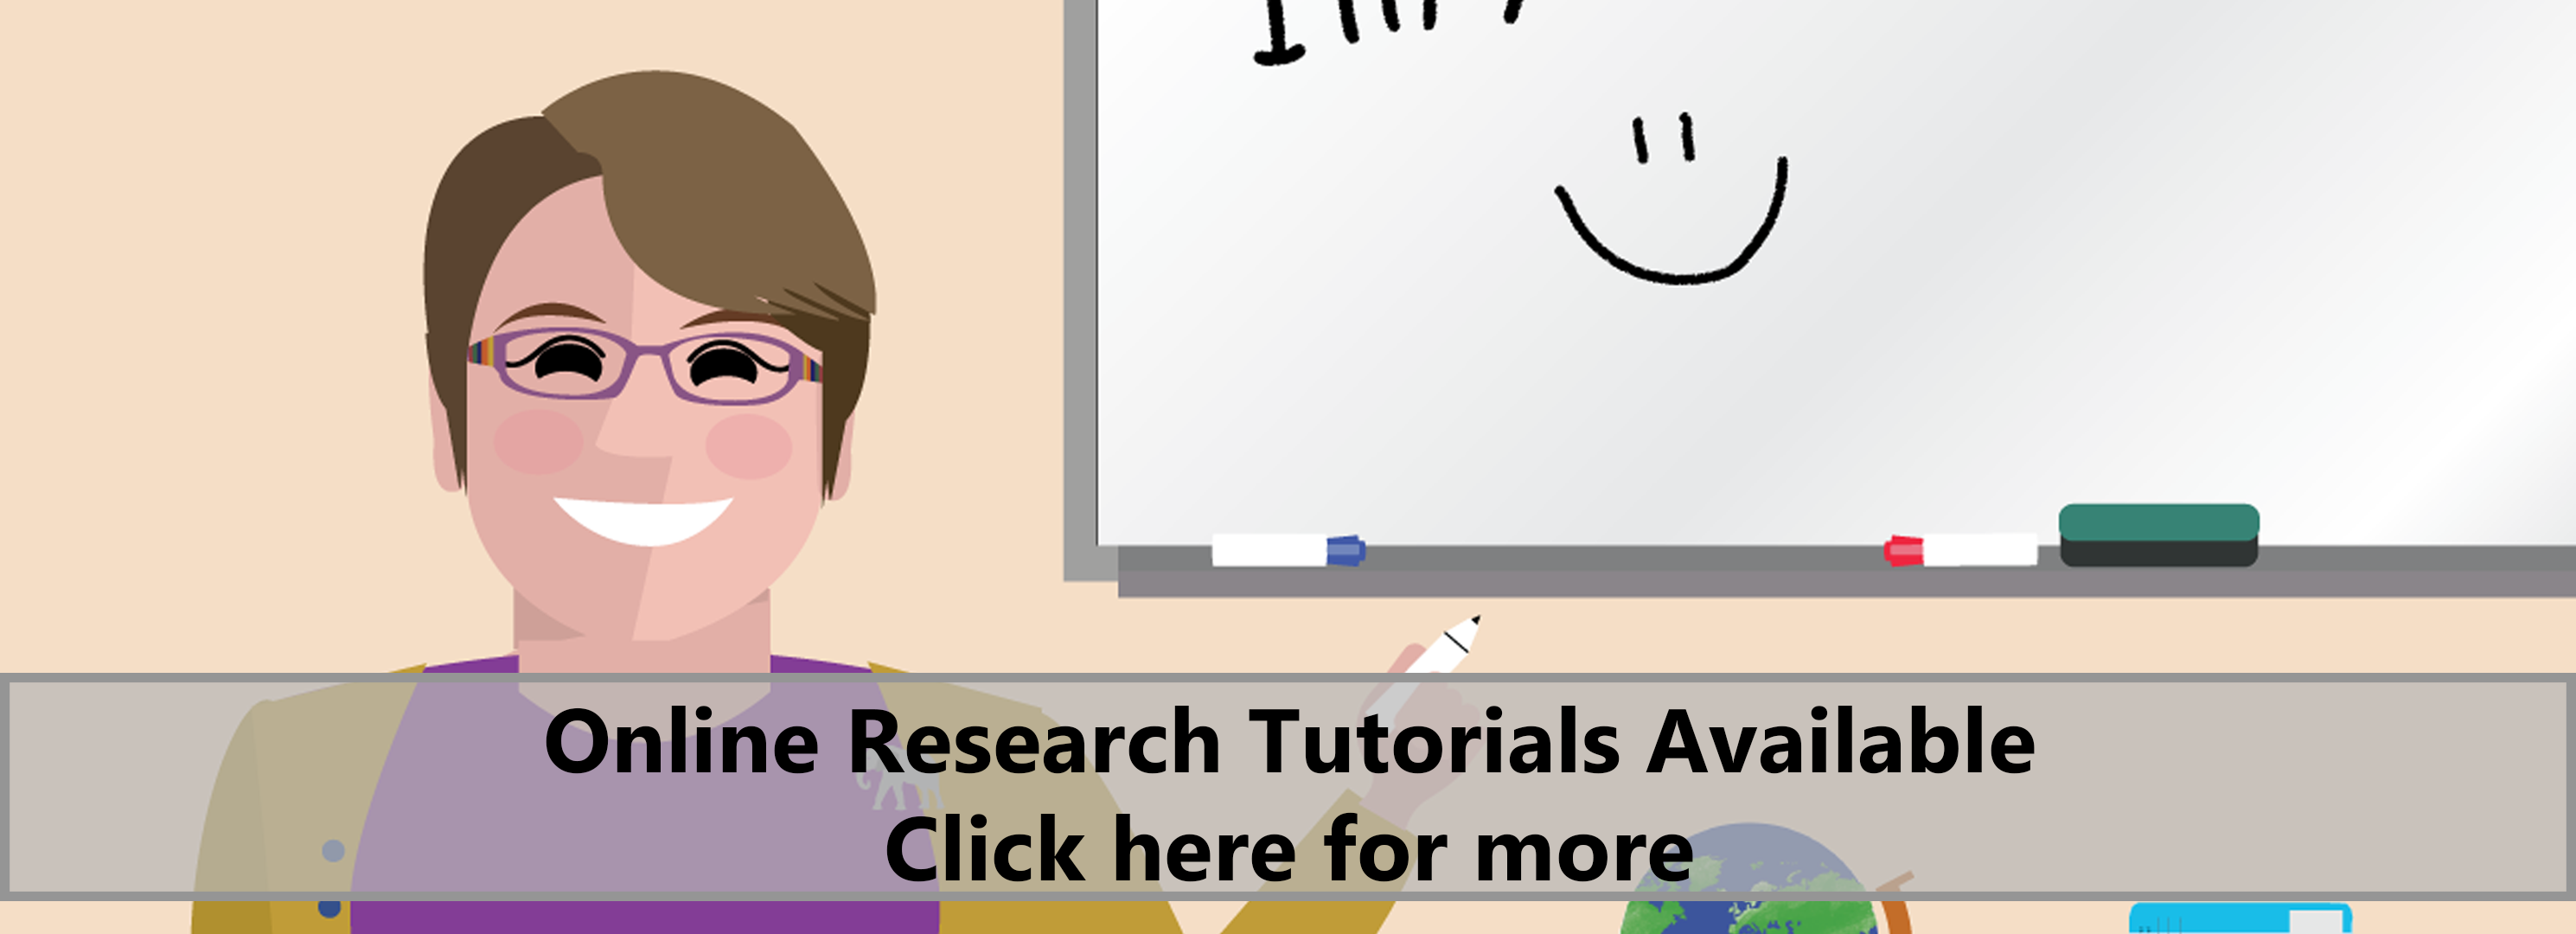 Online research tutorials available. Click here for more.